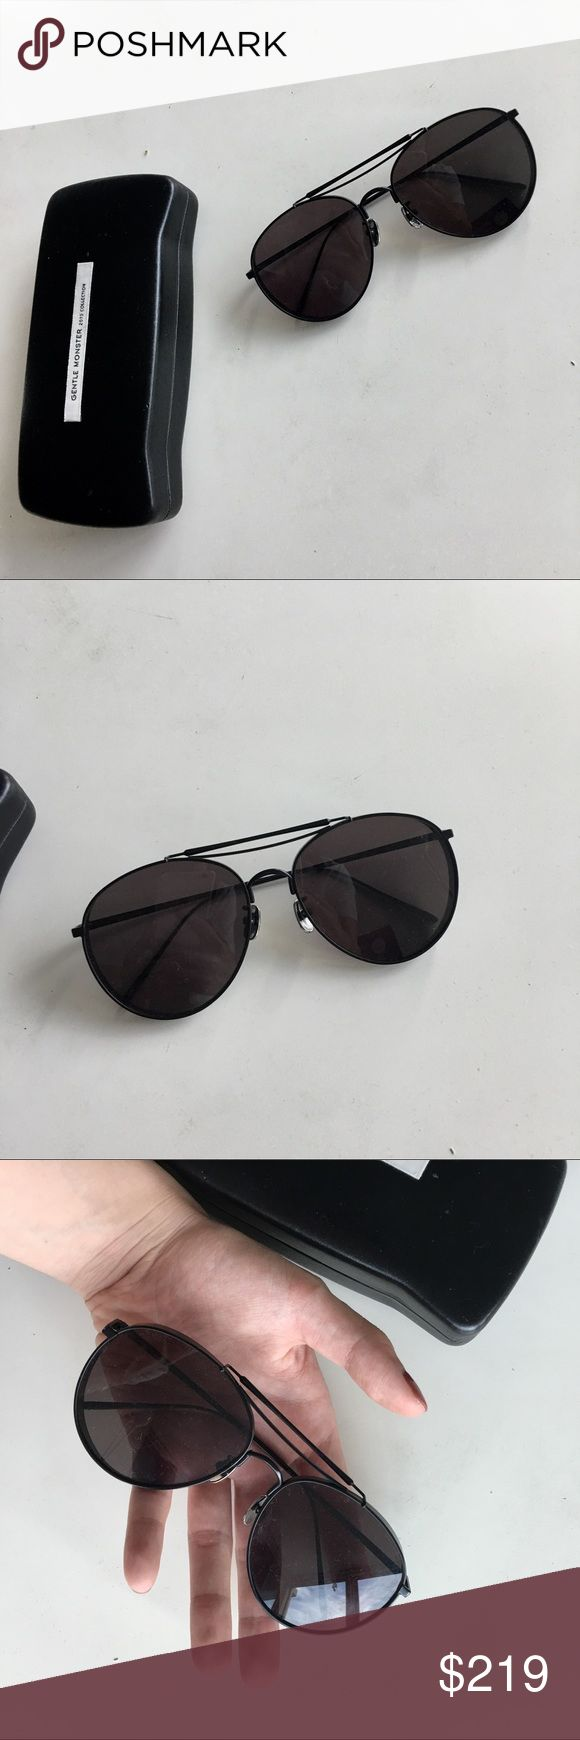 Authentic Gentle Monster Big Bully Black Sunglass Gentle Monster. Big Bully Sunglasses. Black. Excellent condition. Worn several times, Authenticity 10000%. Come with the original box. Accessories Sunglasses